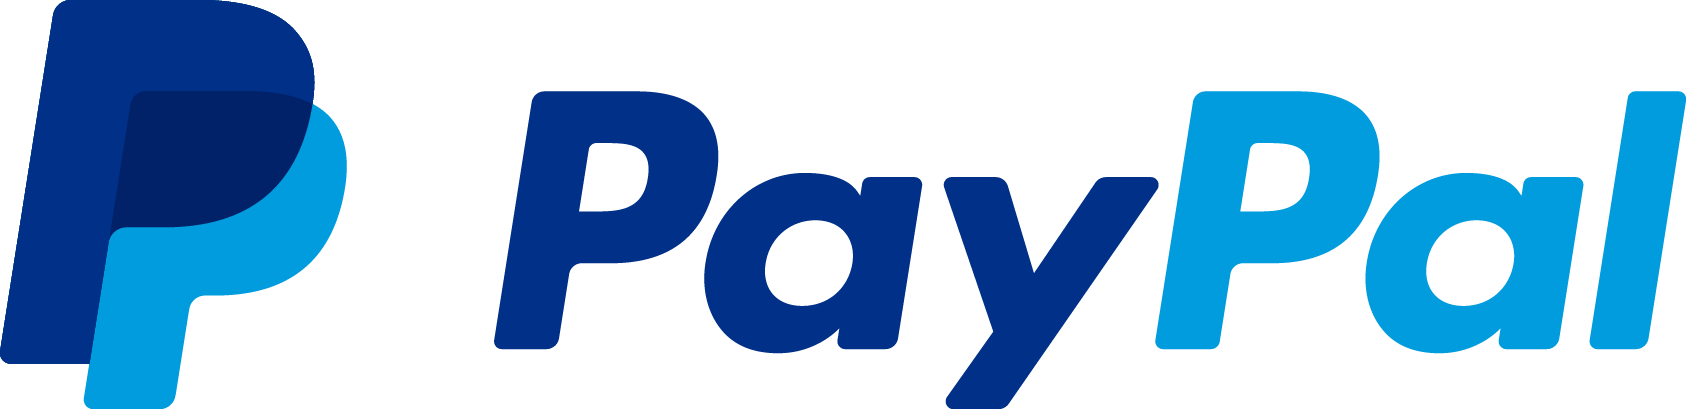 PayPal_6.8.15